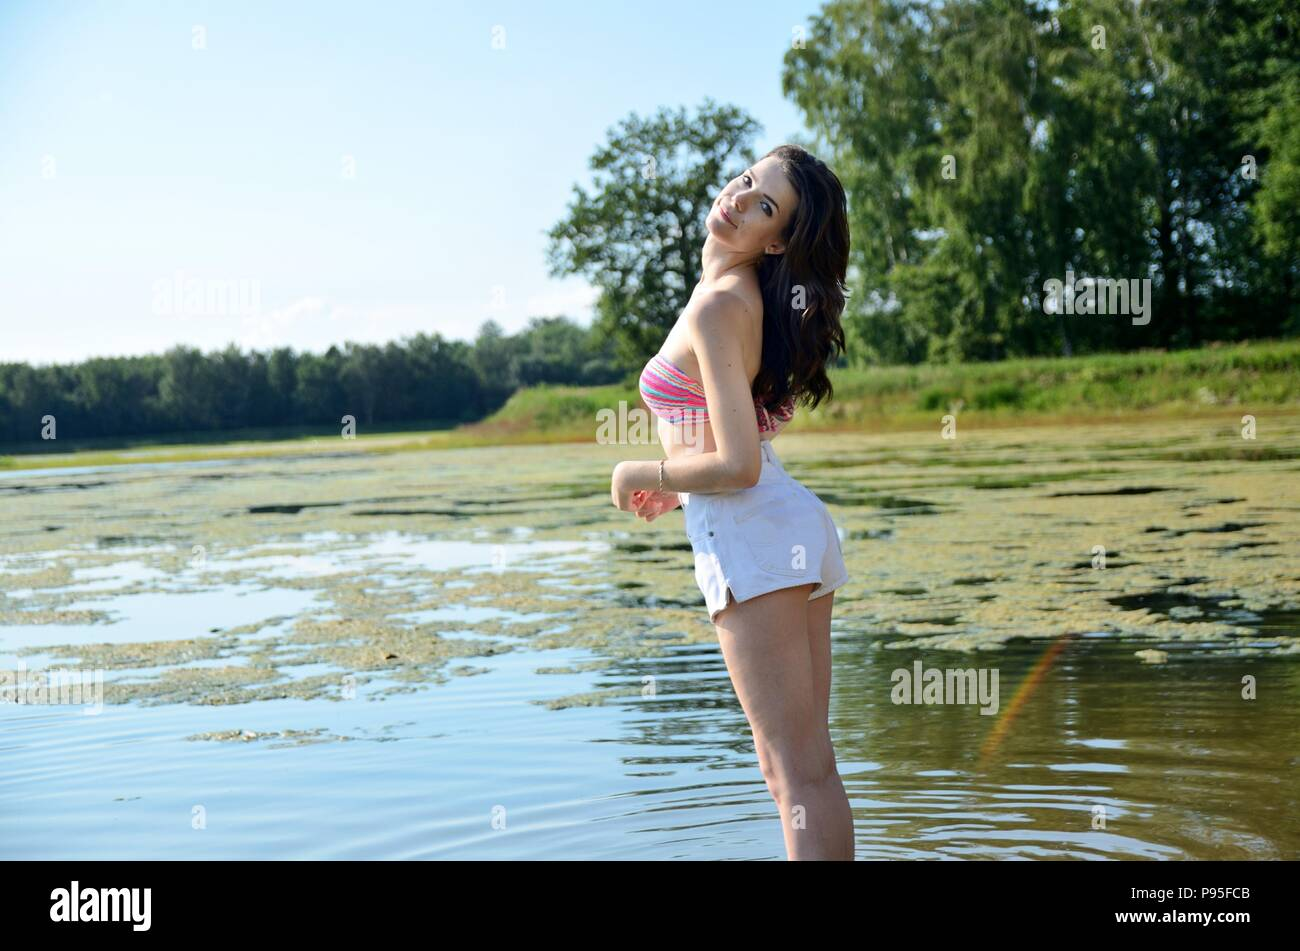 Young female model in outdoor photo session in Poland. Girl in short pants and bikini top stands in lake. Stock Photo